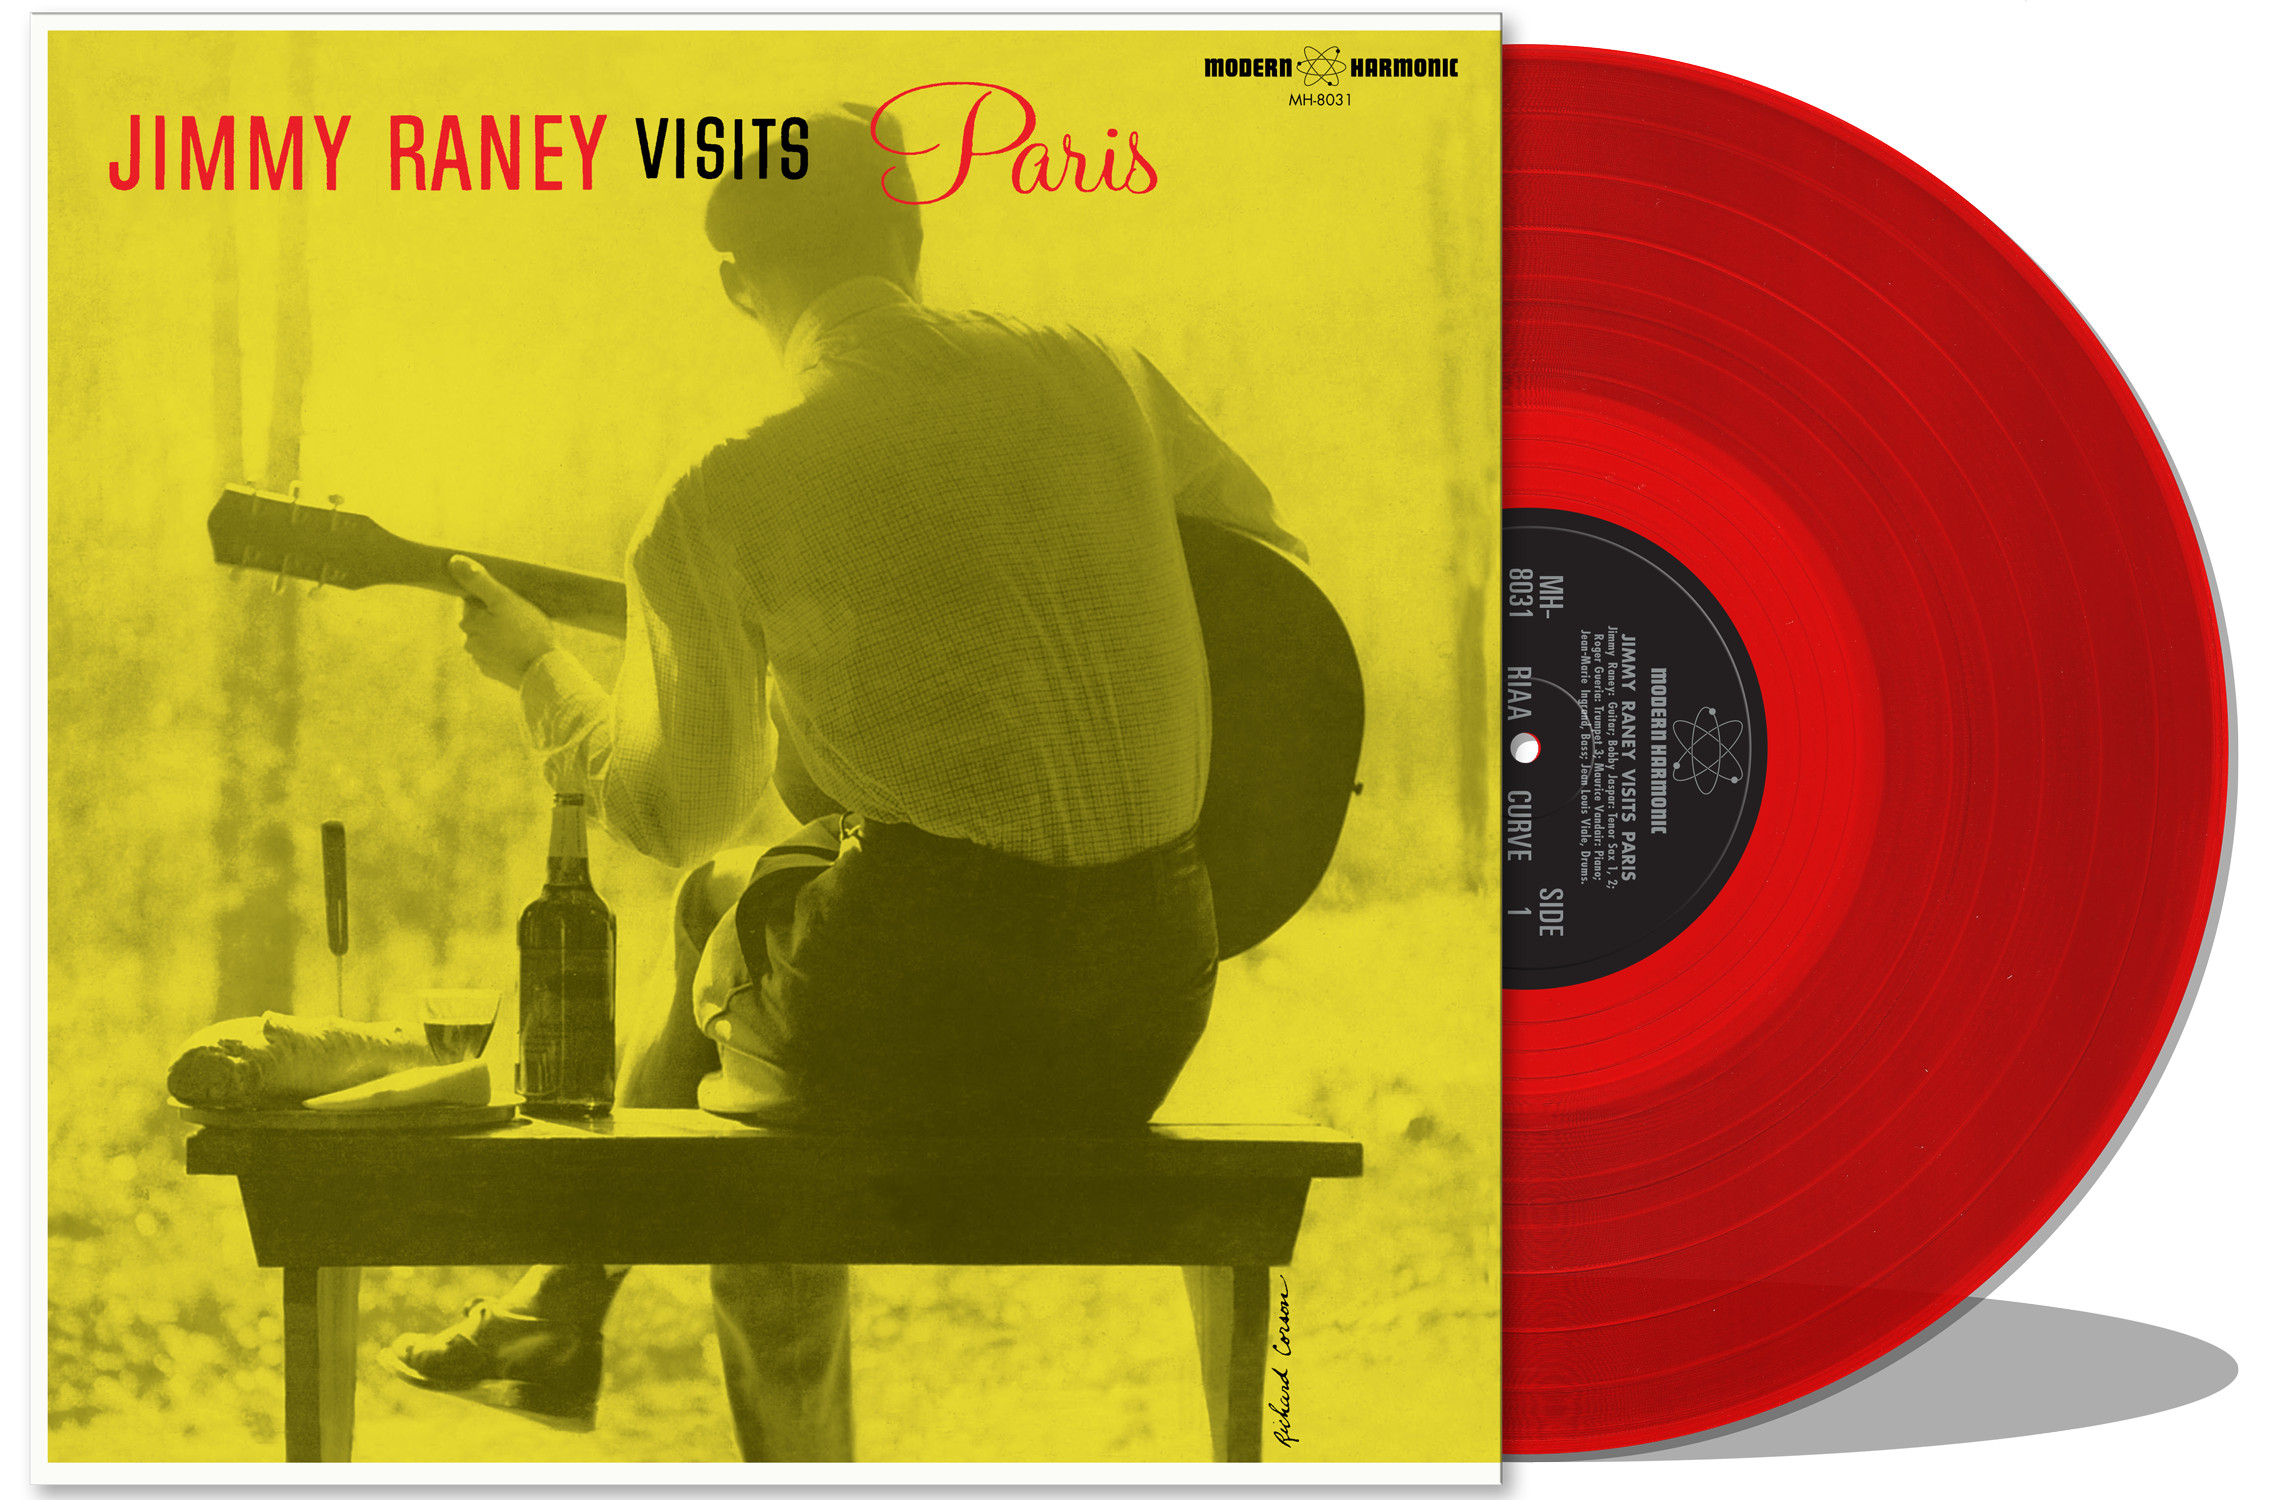 Raney, Jimmy - Visits Paris - LP - MH-8031